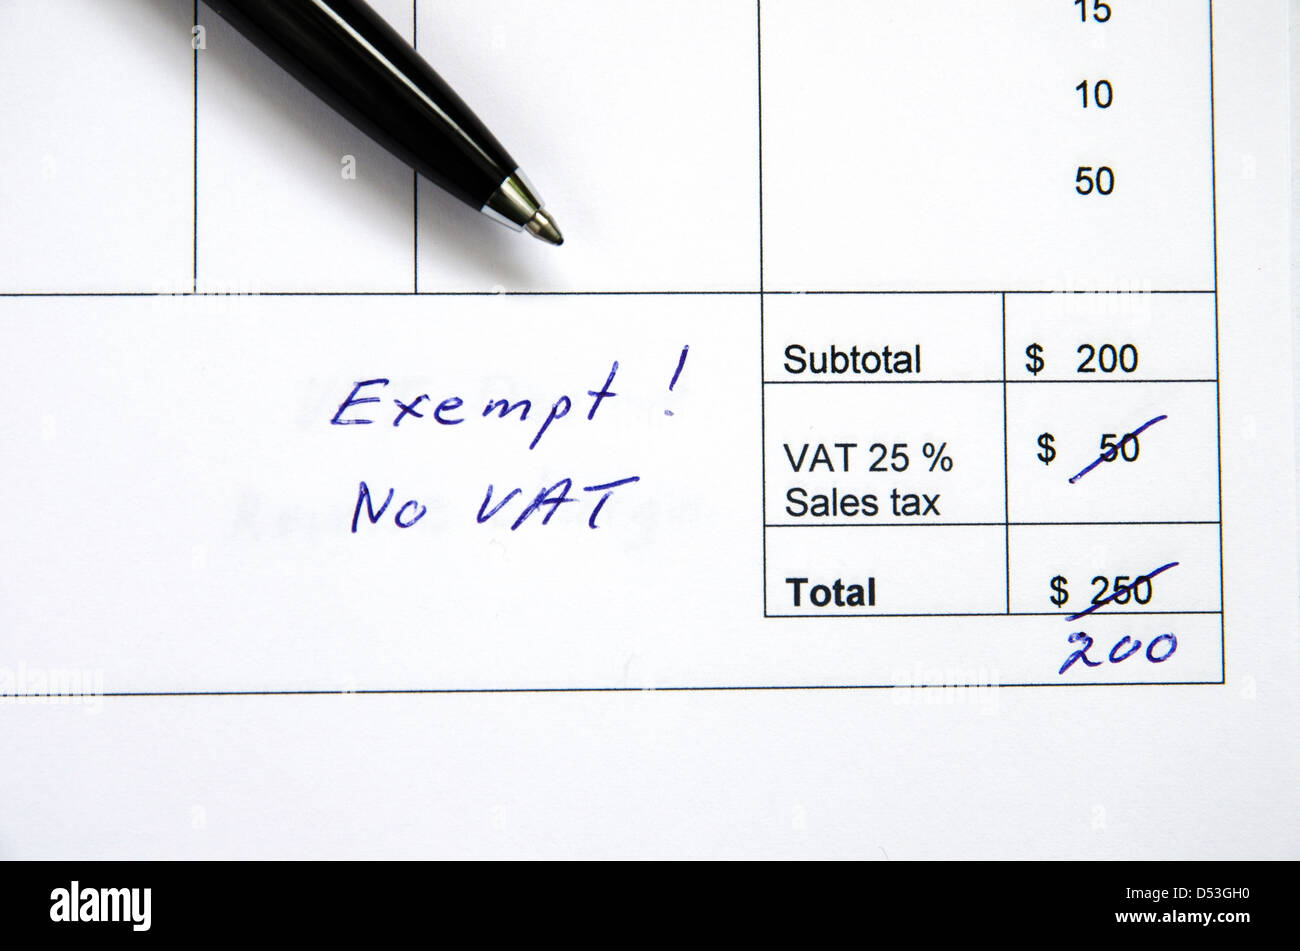 Detail from an invoice with the total amount changed because incorrect VAT, exempt. - Stock Image